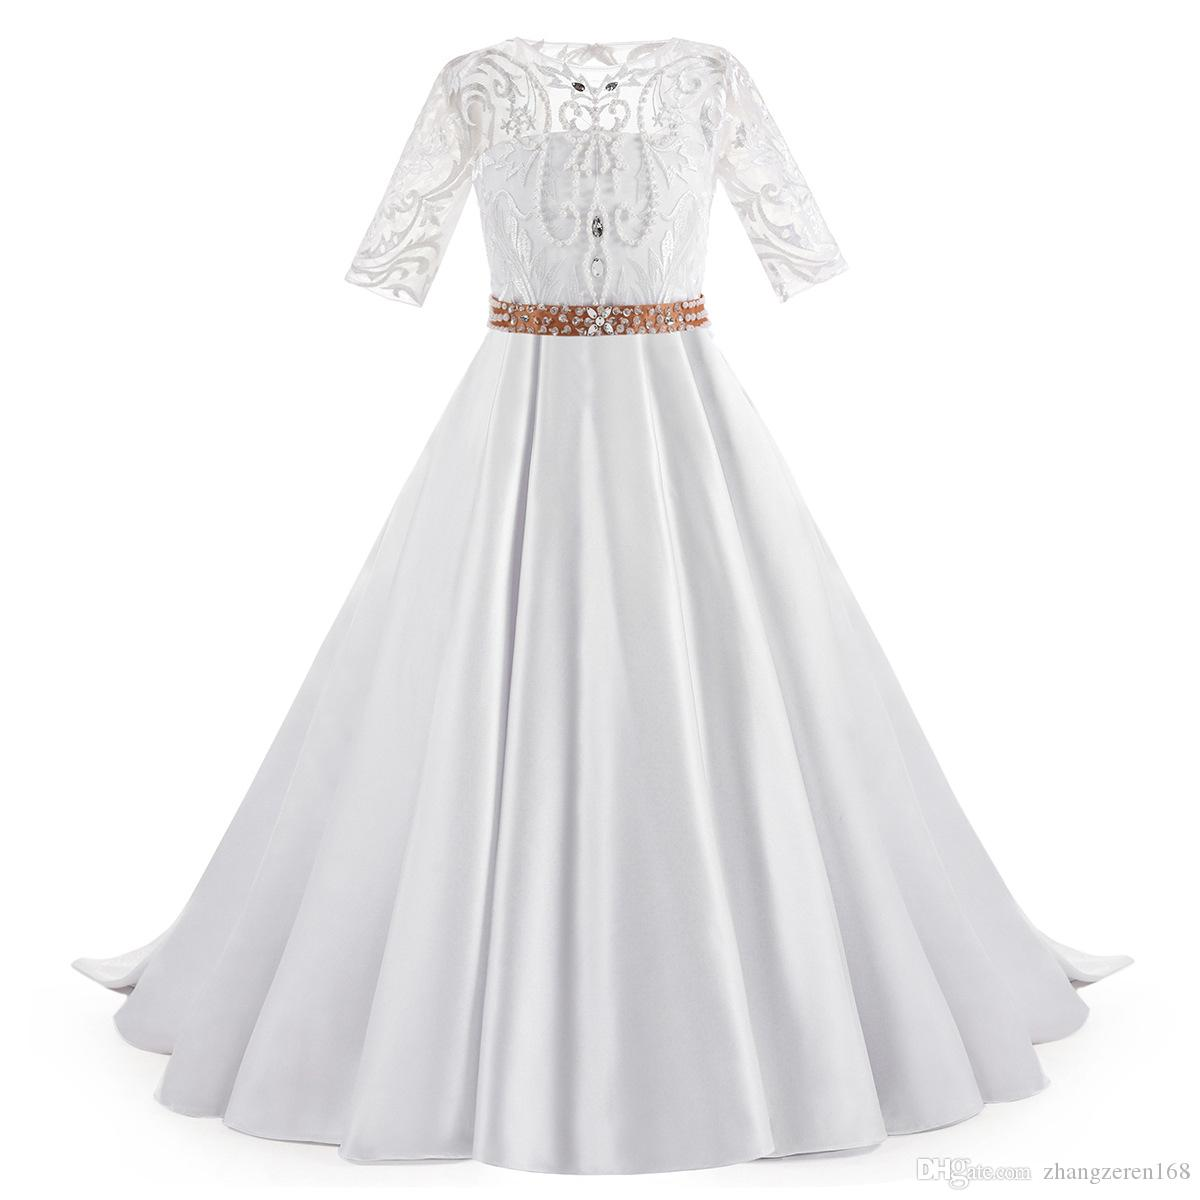 New Flower Girls Dresses lace beaded small trailing Short sleeve boat neckline children show princess gown